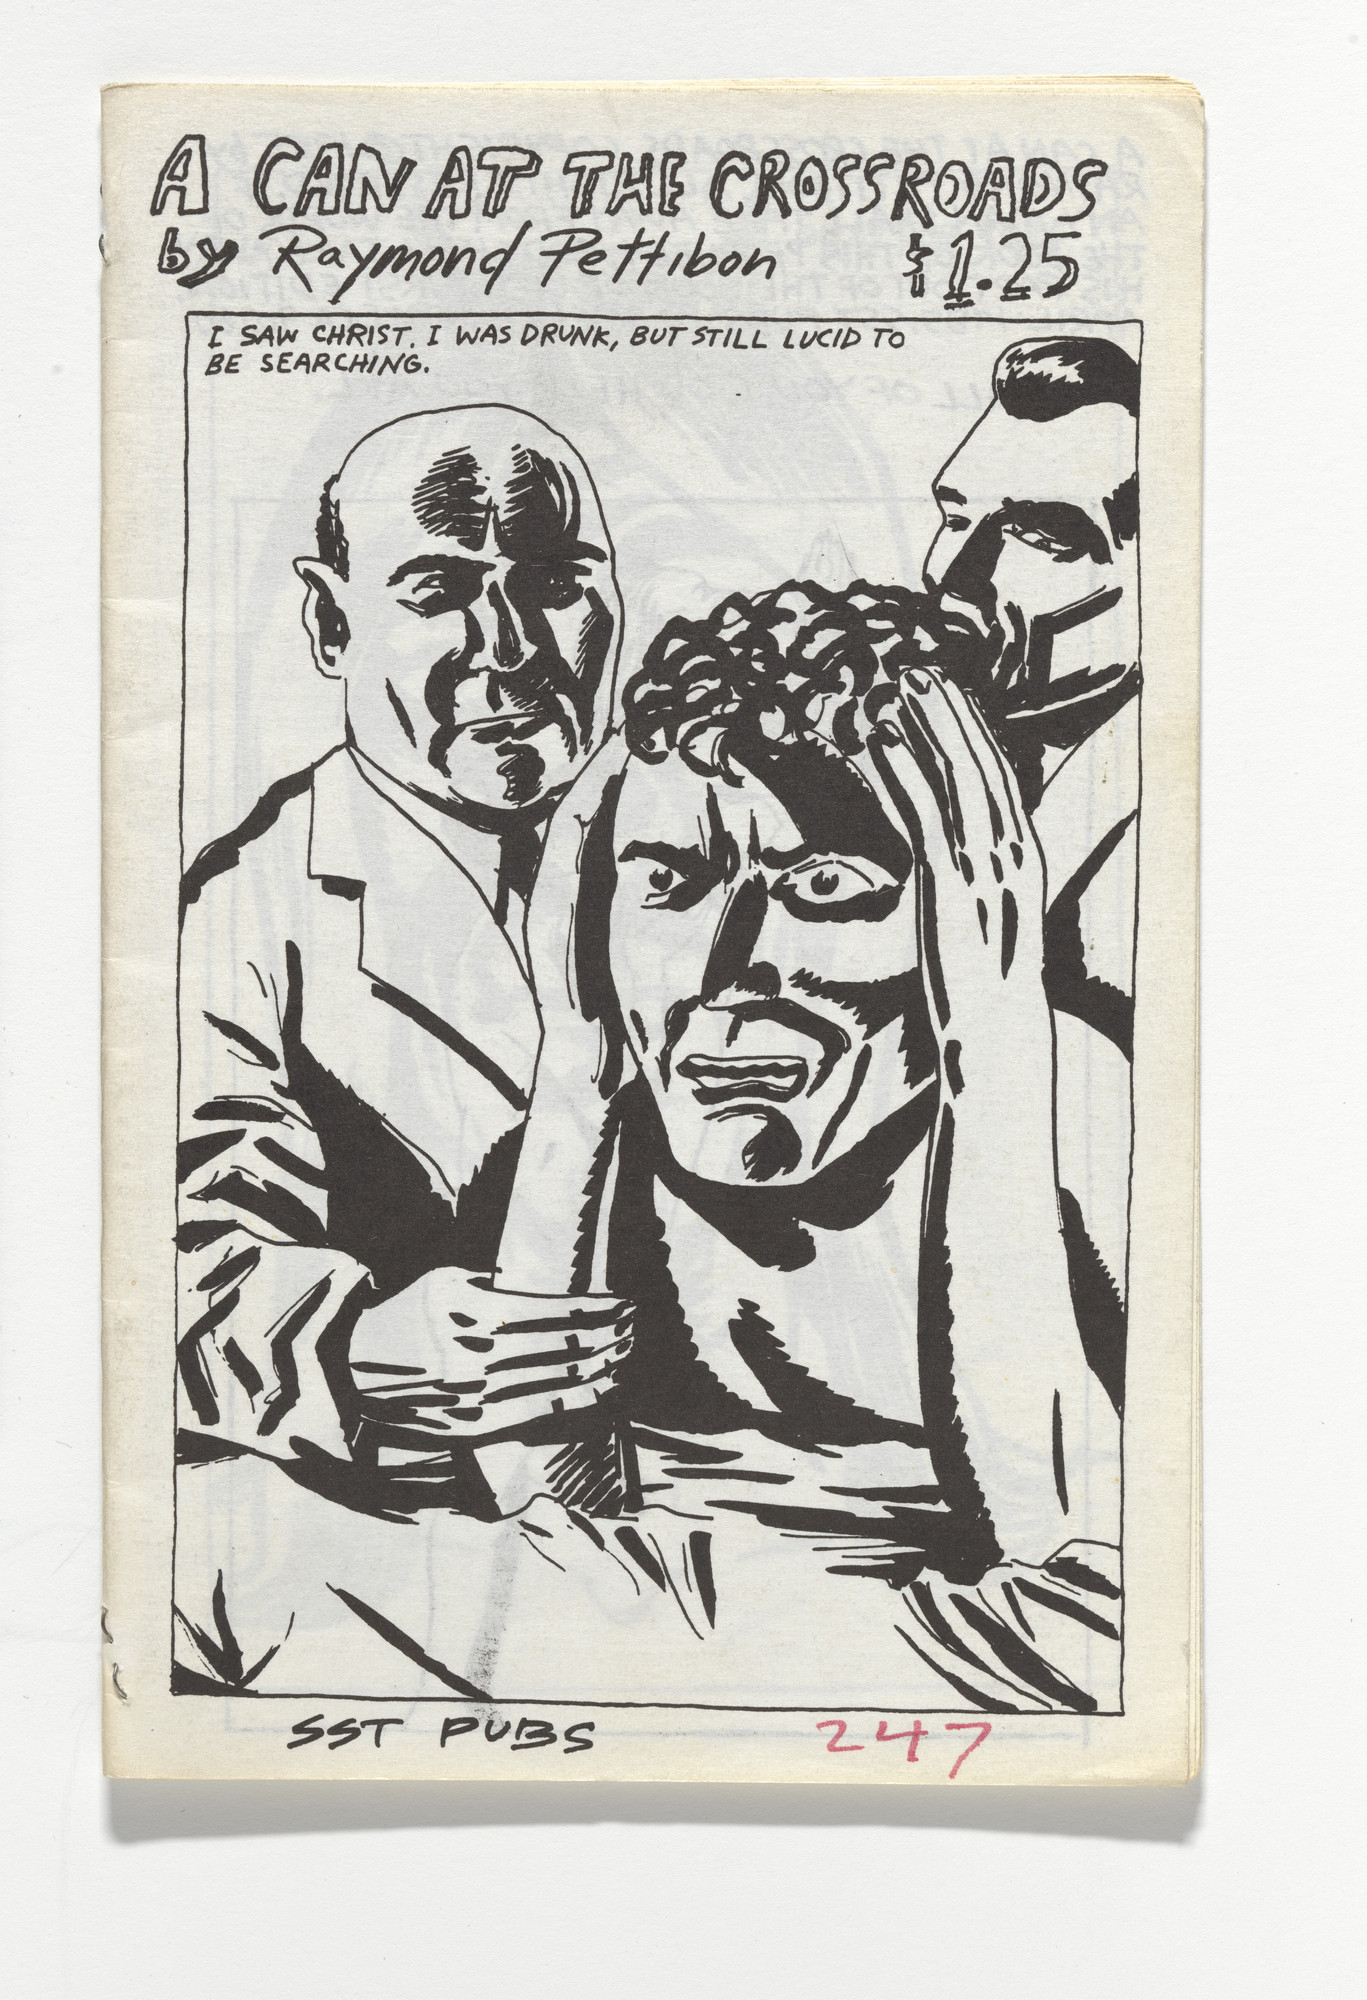 Raymond Pettibon, Nelson Tarpenny. A Can at the Crossroads. 1985